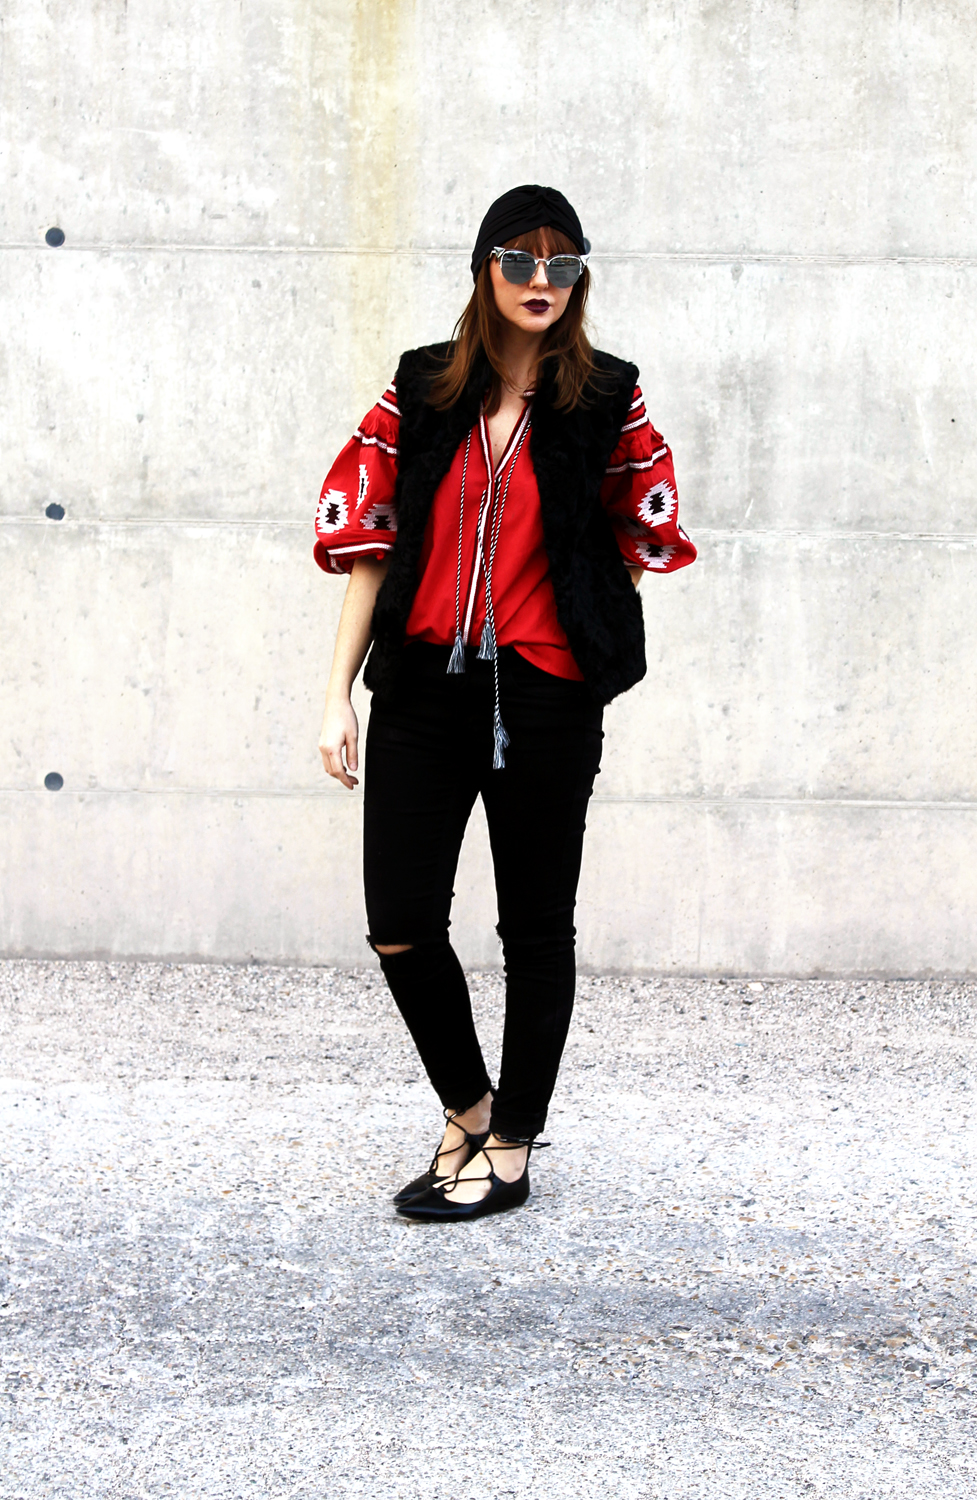 2-Francesca-Focarini-winter-outfit-boho-red-blouse